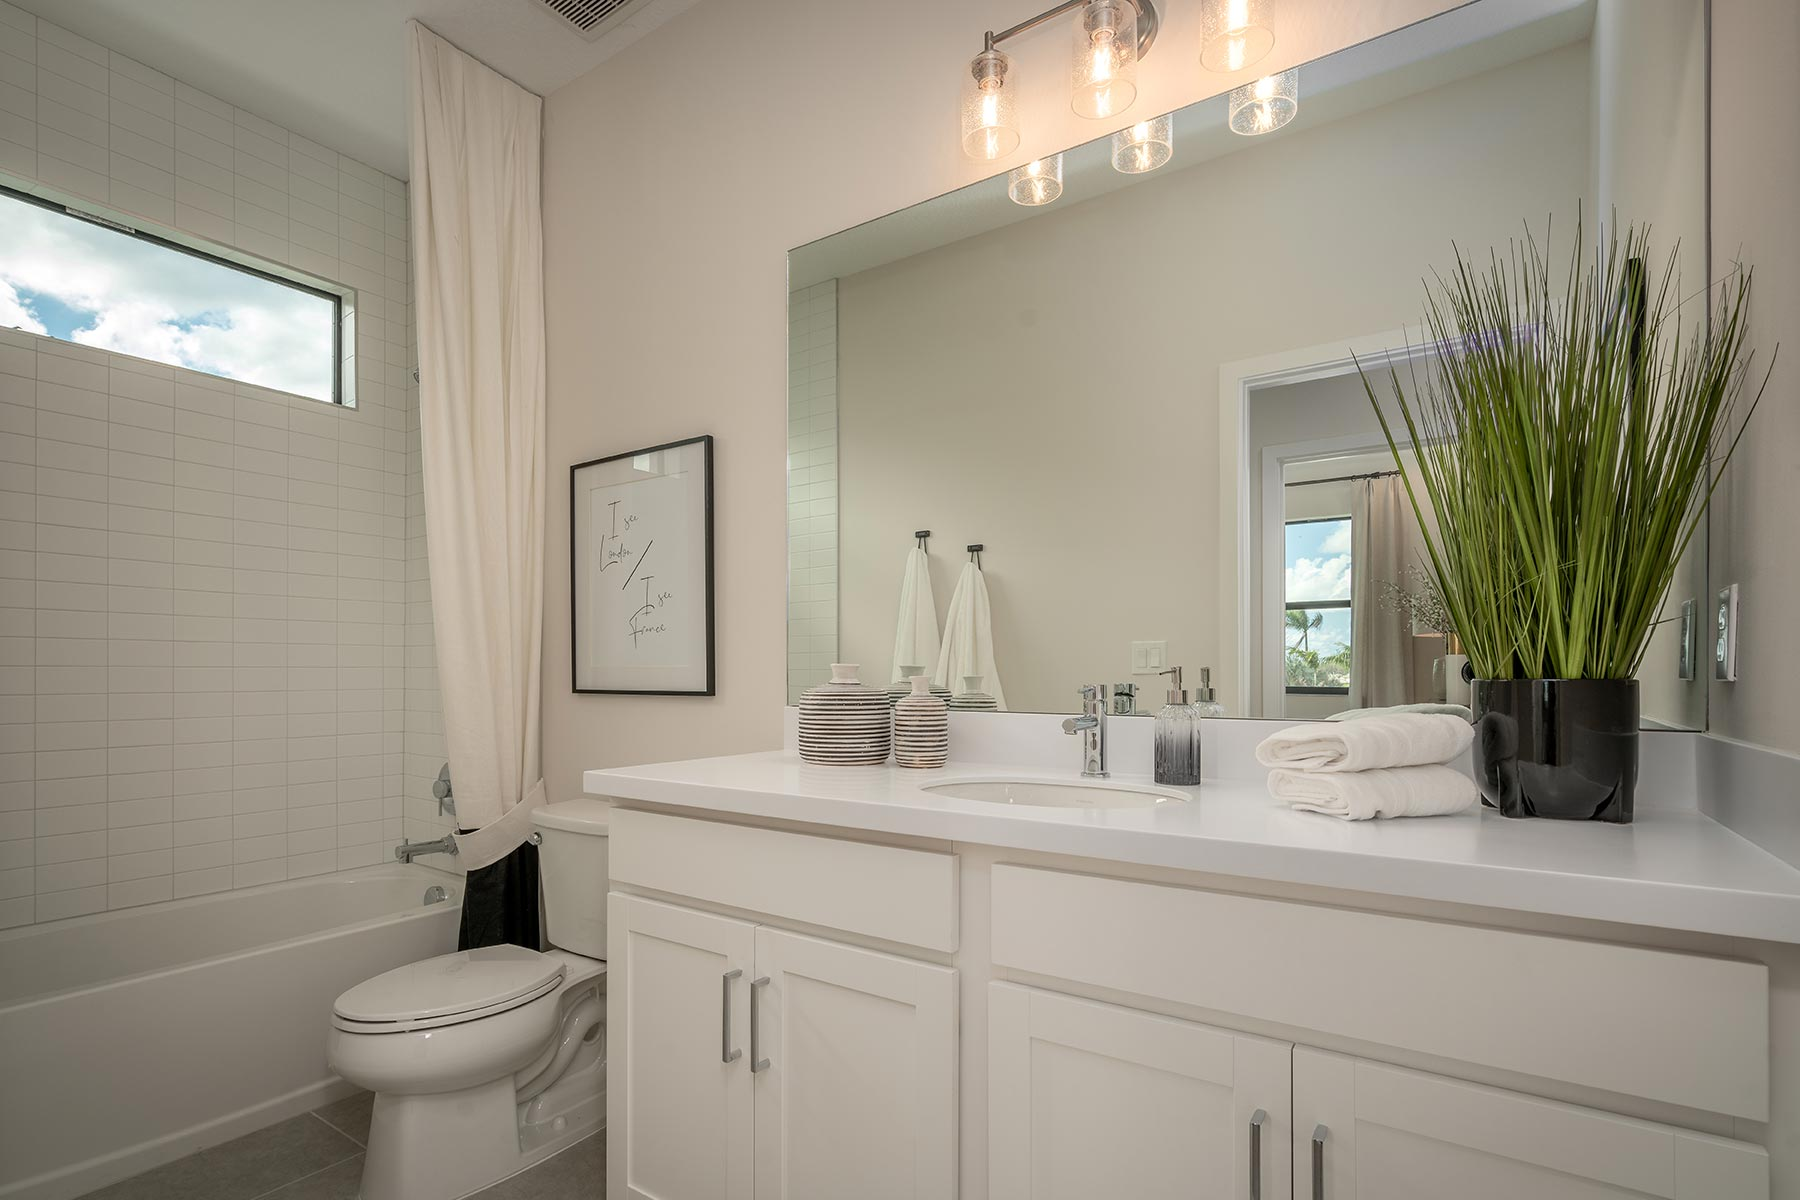 Ellery Plan Bath at Saddlewood in Lake Worth Florida by Mattamy Homes